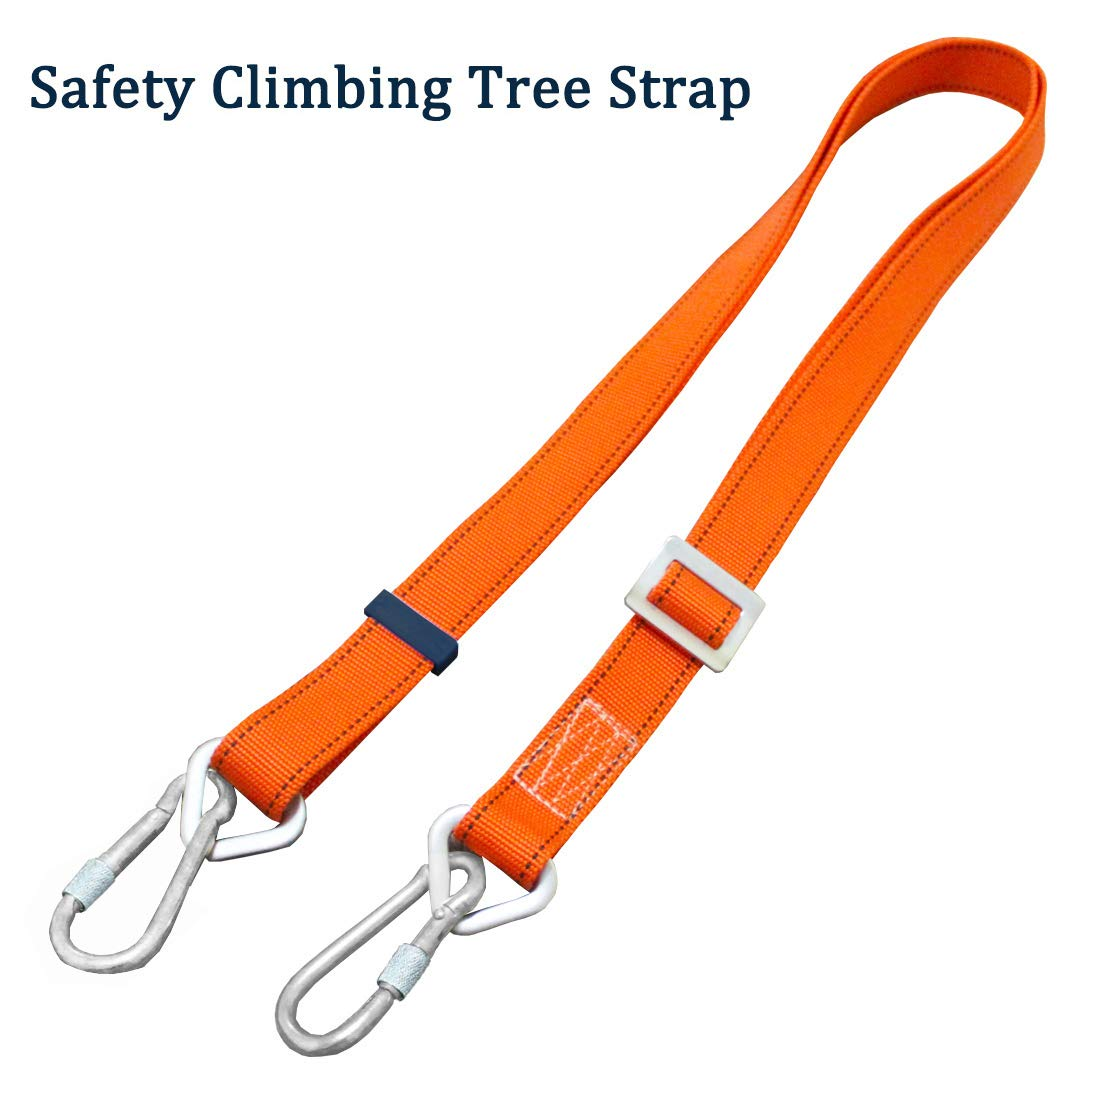 Boaton Hunting Safety Harness, Tree Climbing Belt, Linemans Belt, Add Level of Safety for Hunting, Hanging Stand Or Step, Trimming Tree, Putting Up Deer Stand, Installing Steps, Ladder Or Climbing by Boaton